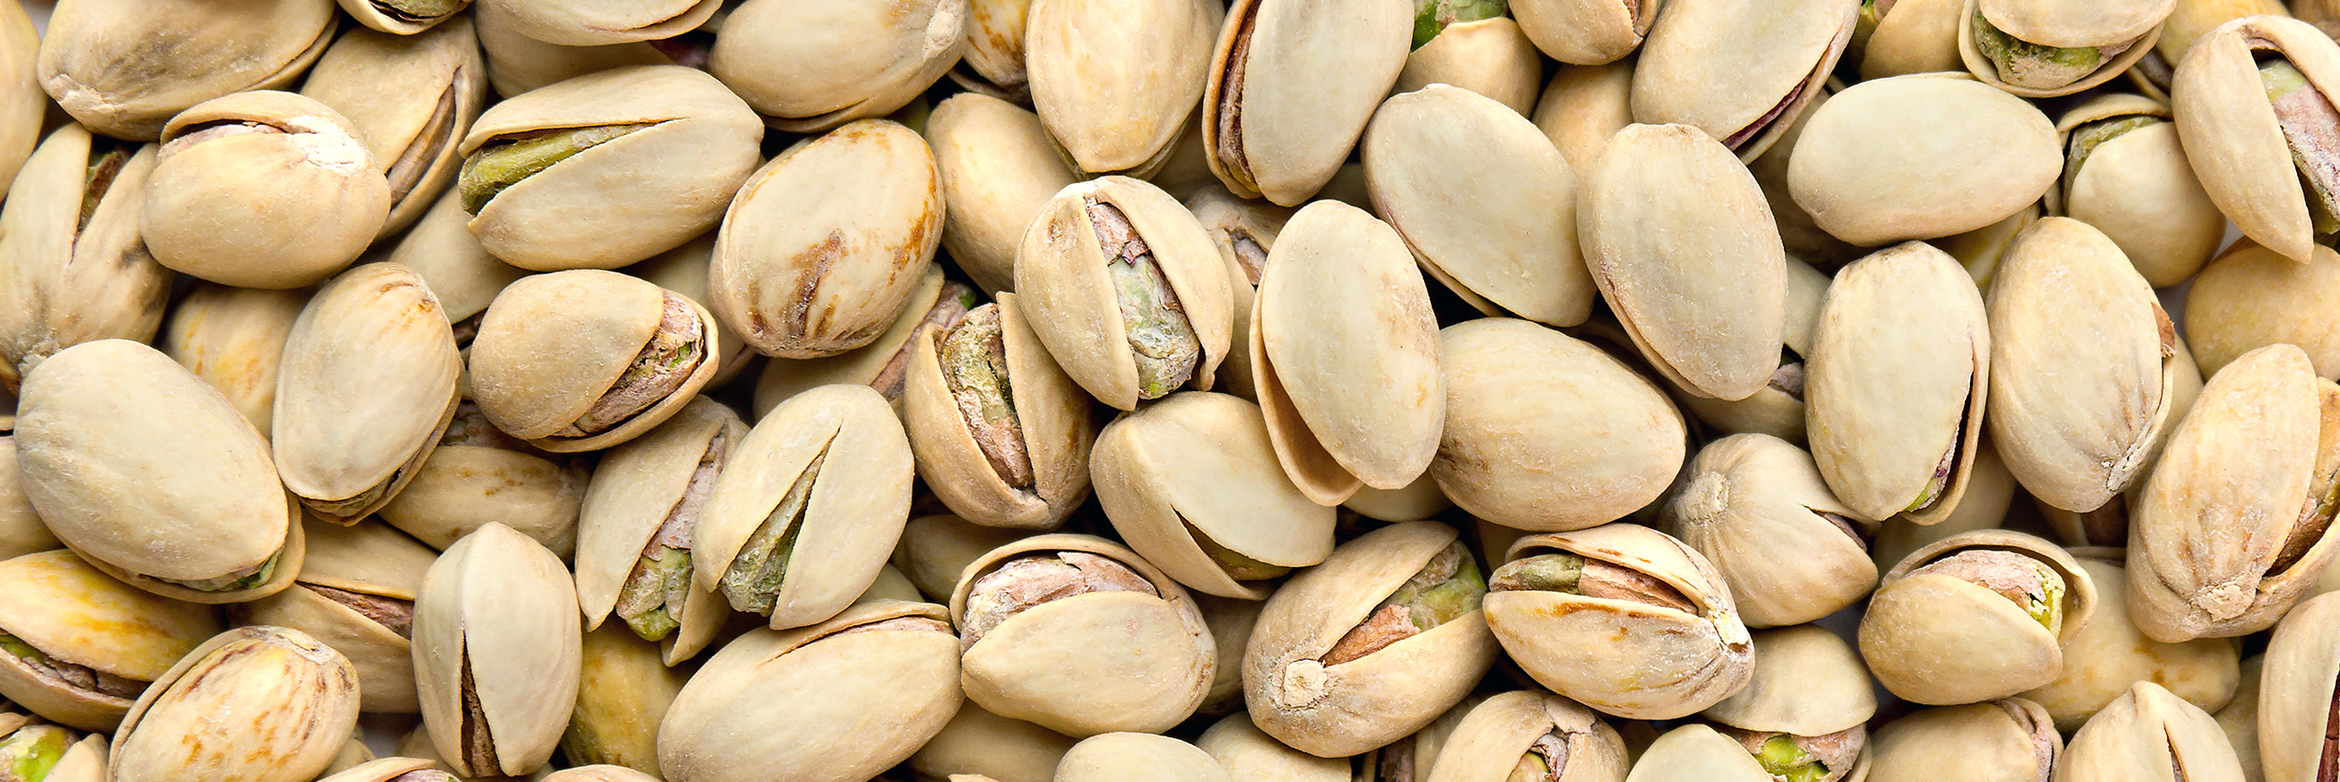 Pistachios - CMV Group